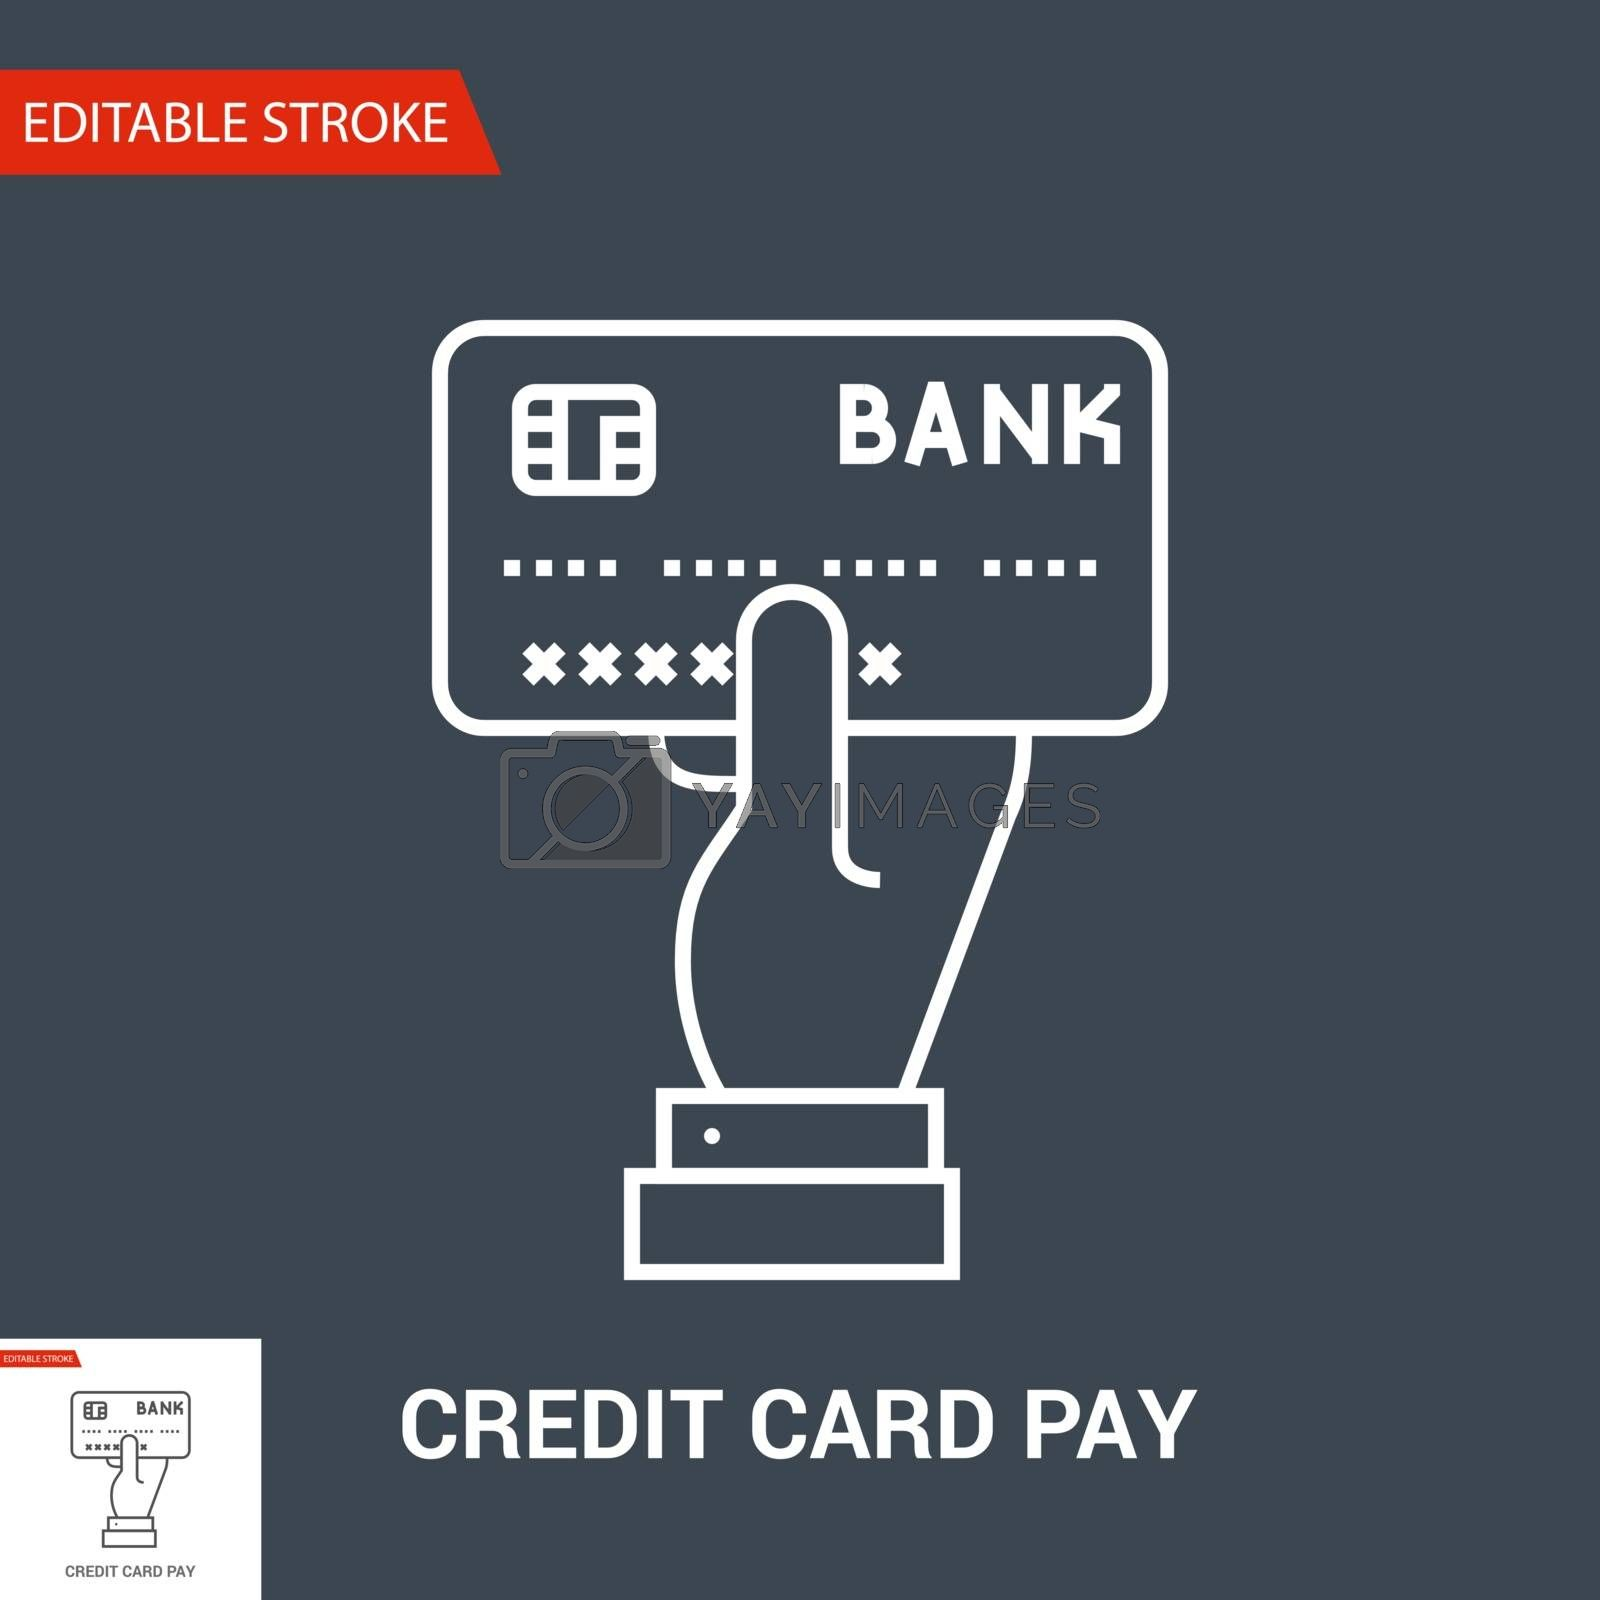 Credit Card Pay Icon. Thin Line Vector Illustration. Adjust stroke weight - Expand to any Size - Easy Change Colour - Editable Stroke